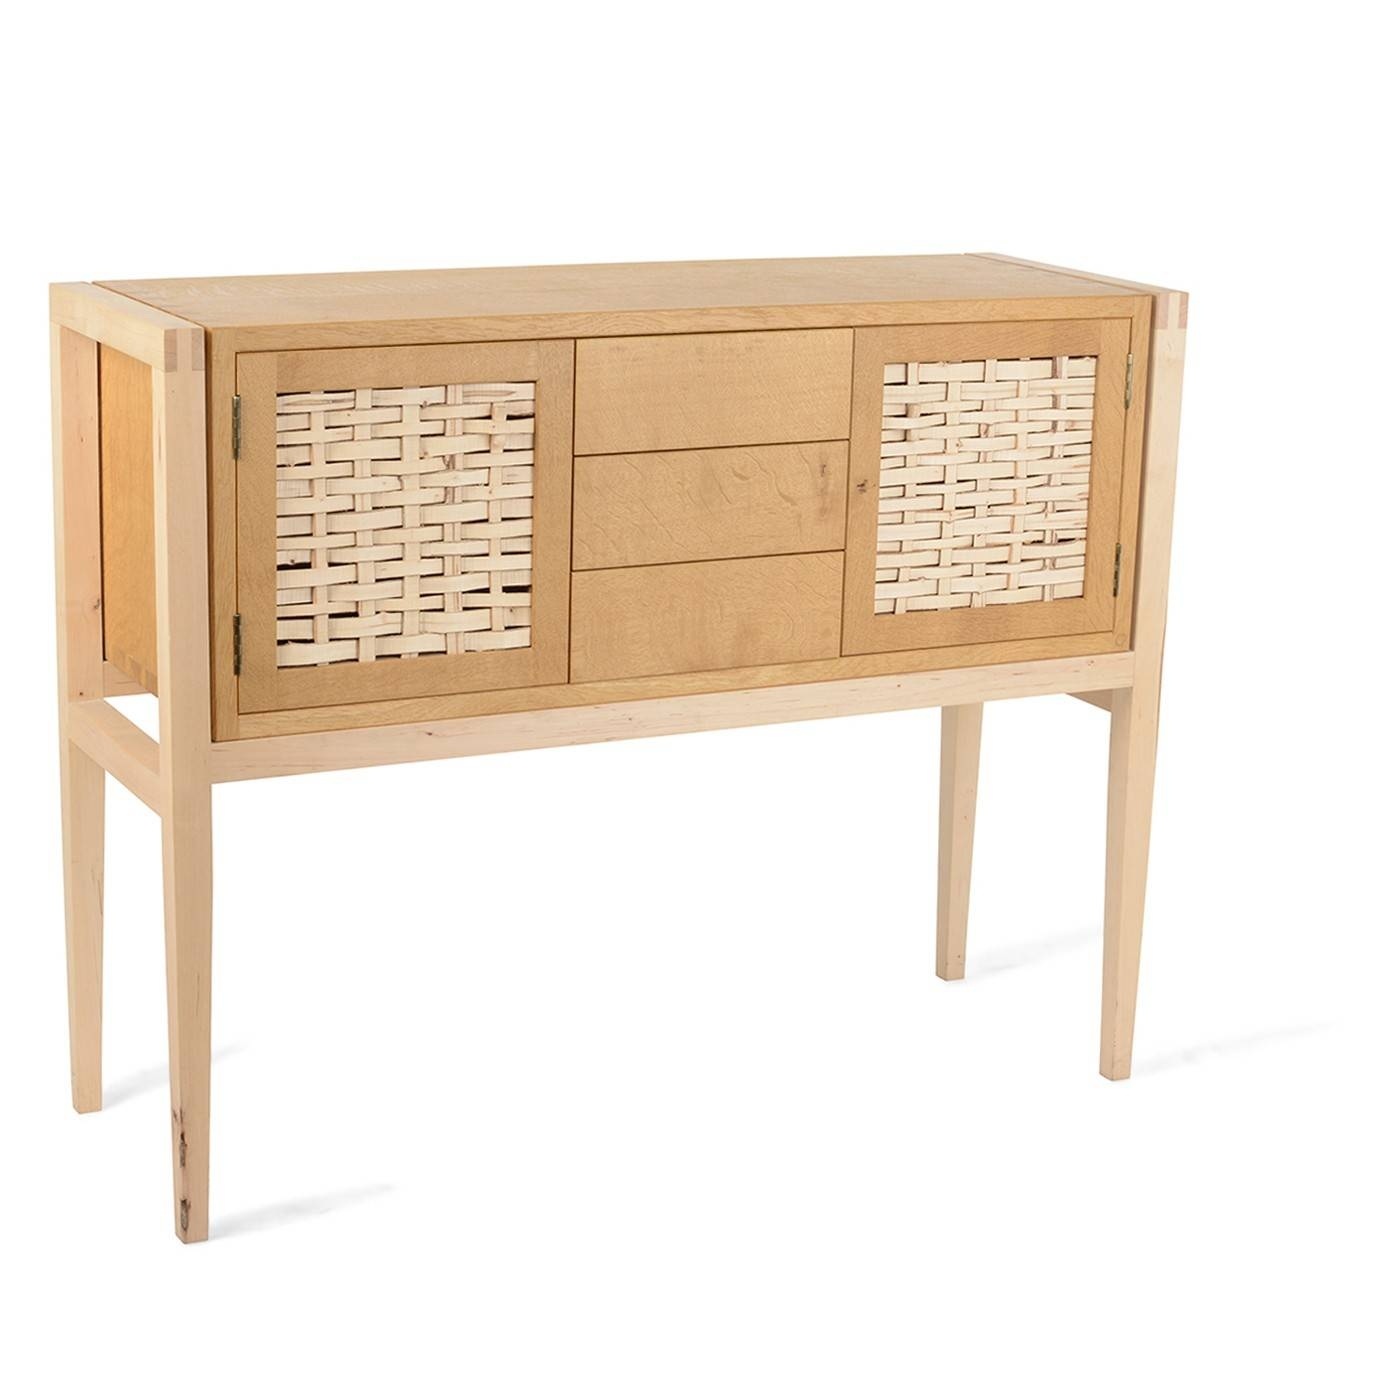 Heal's Oak And Hazel Sideboard in Light Wood Sideboards (Image 6 of 30)